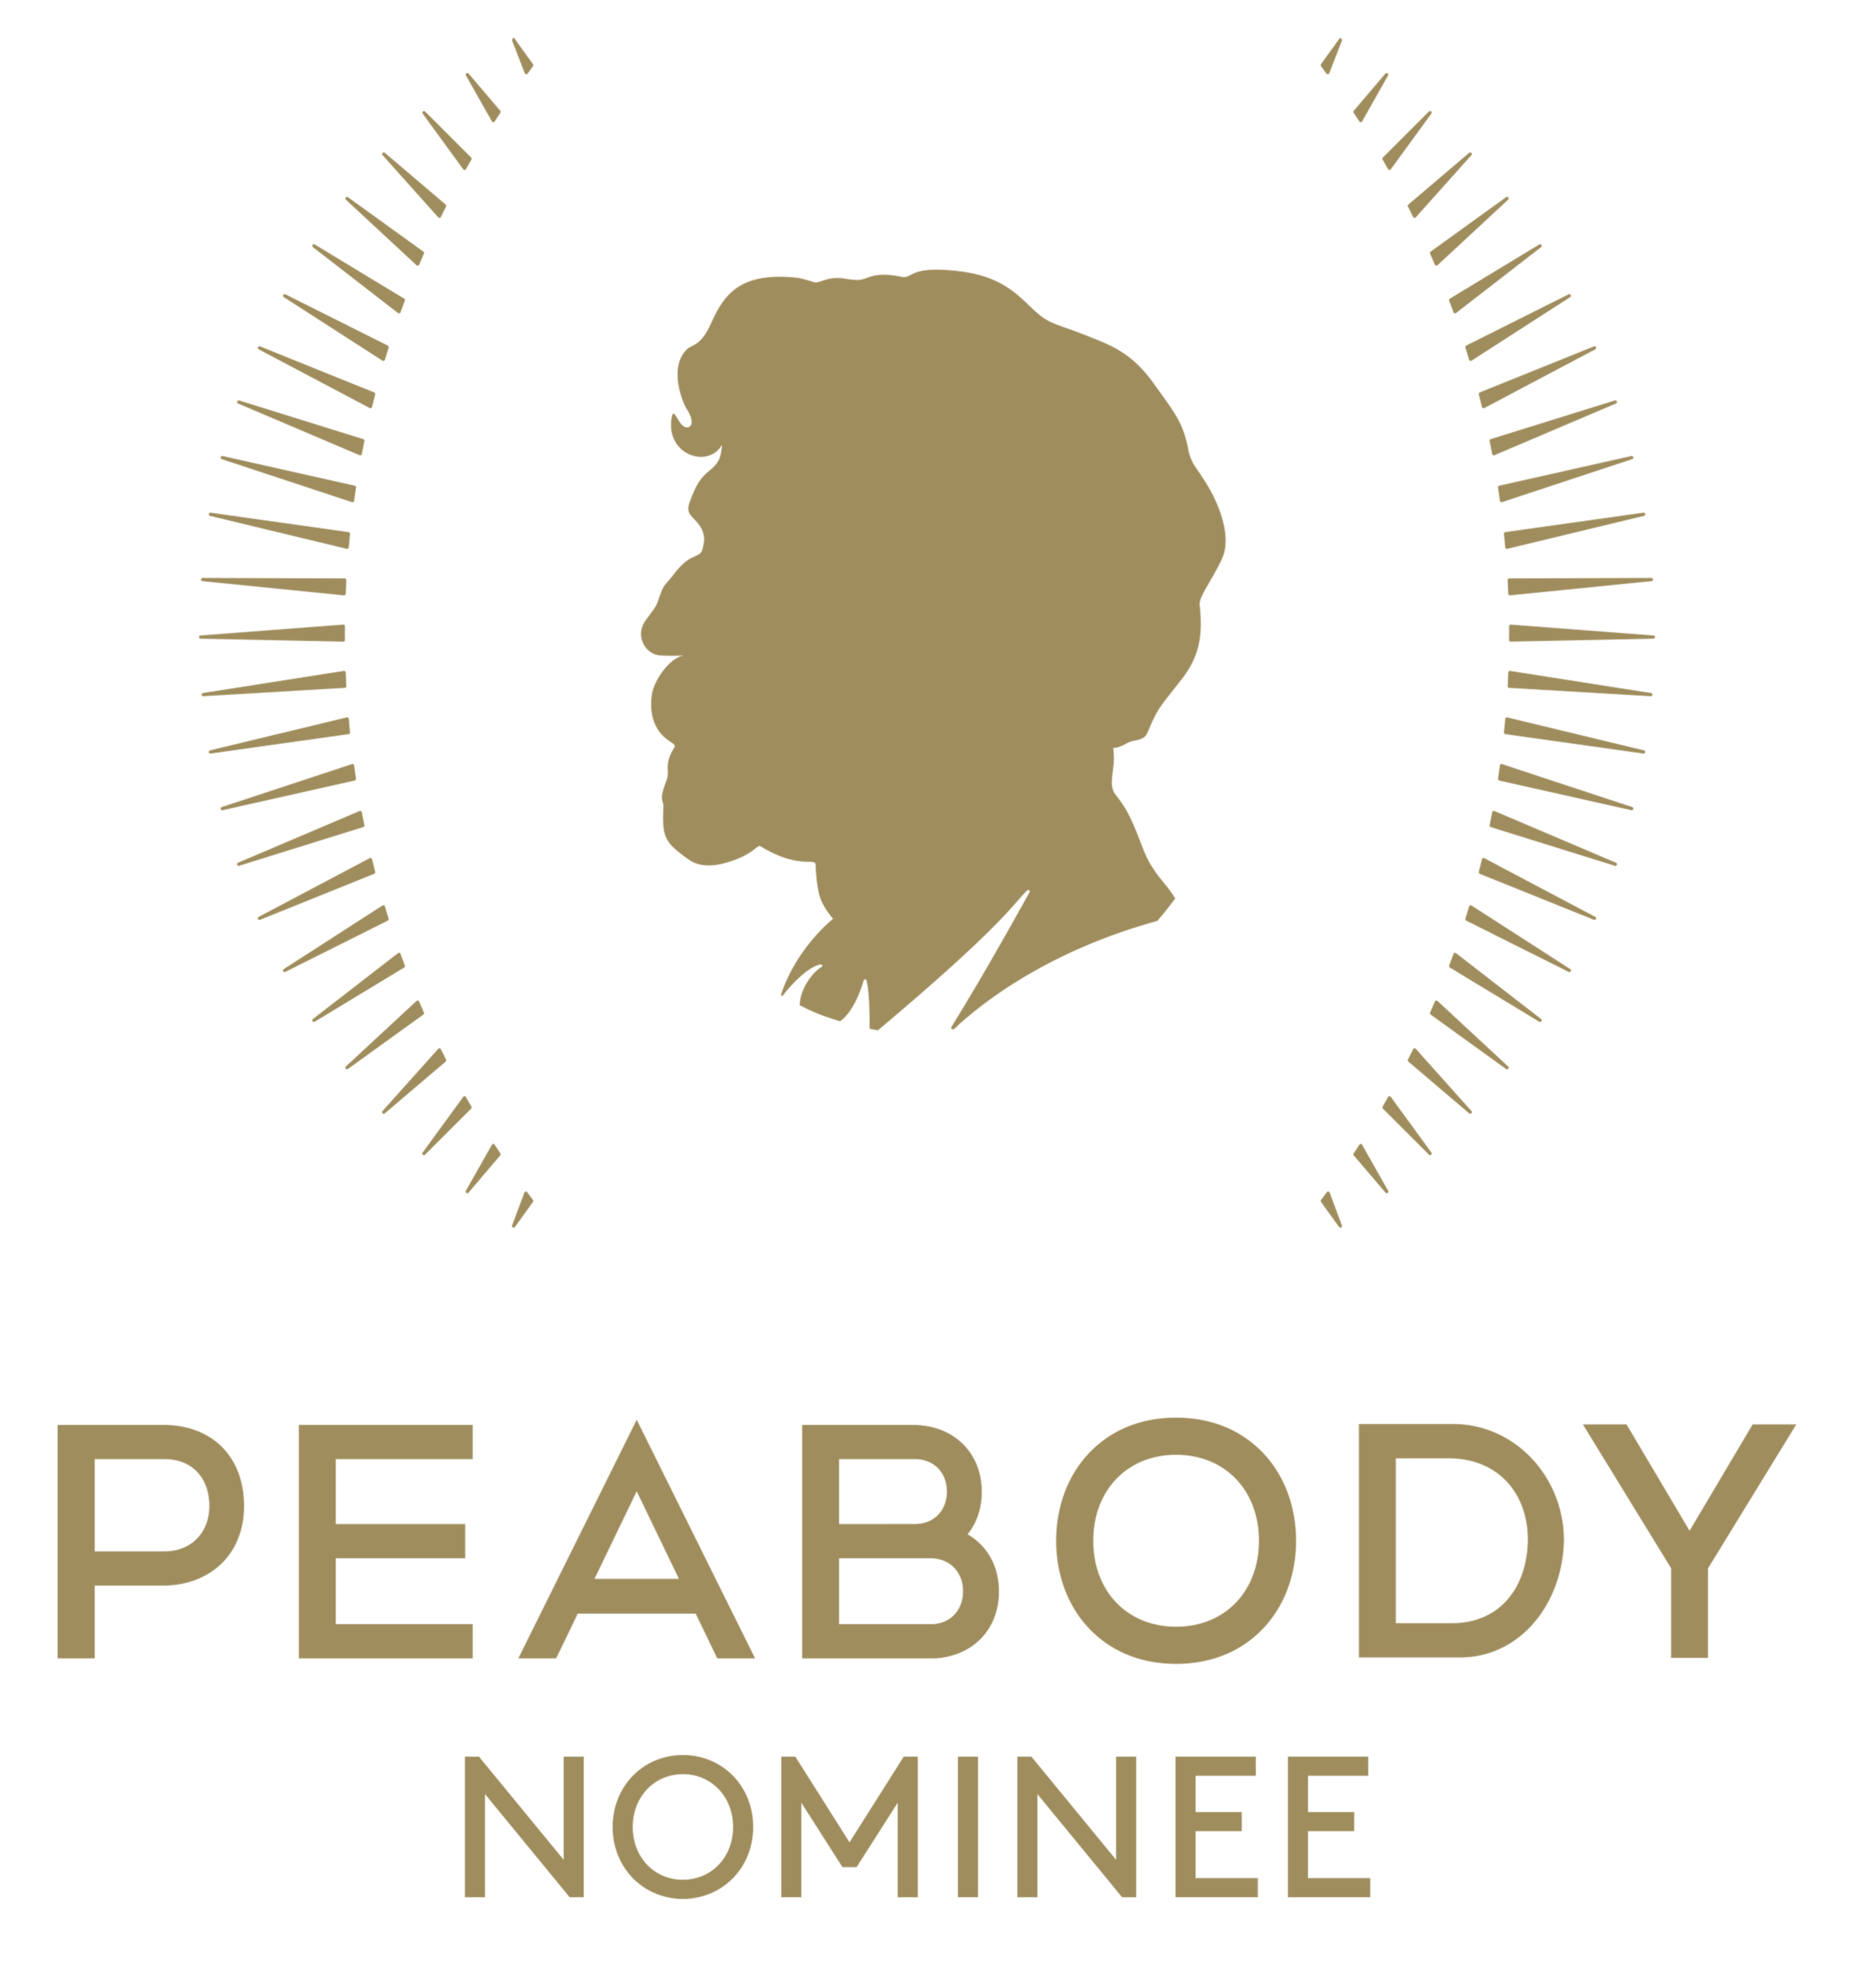 Peabody Official Nominee logo.png